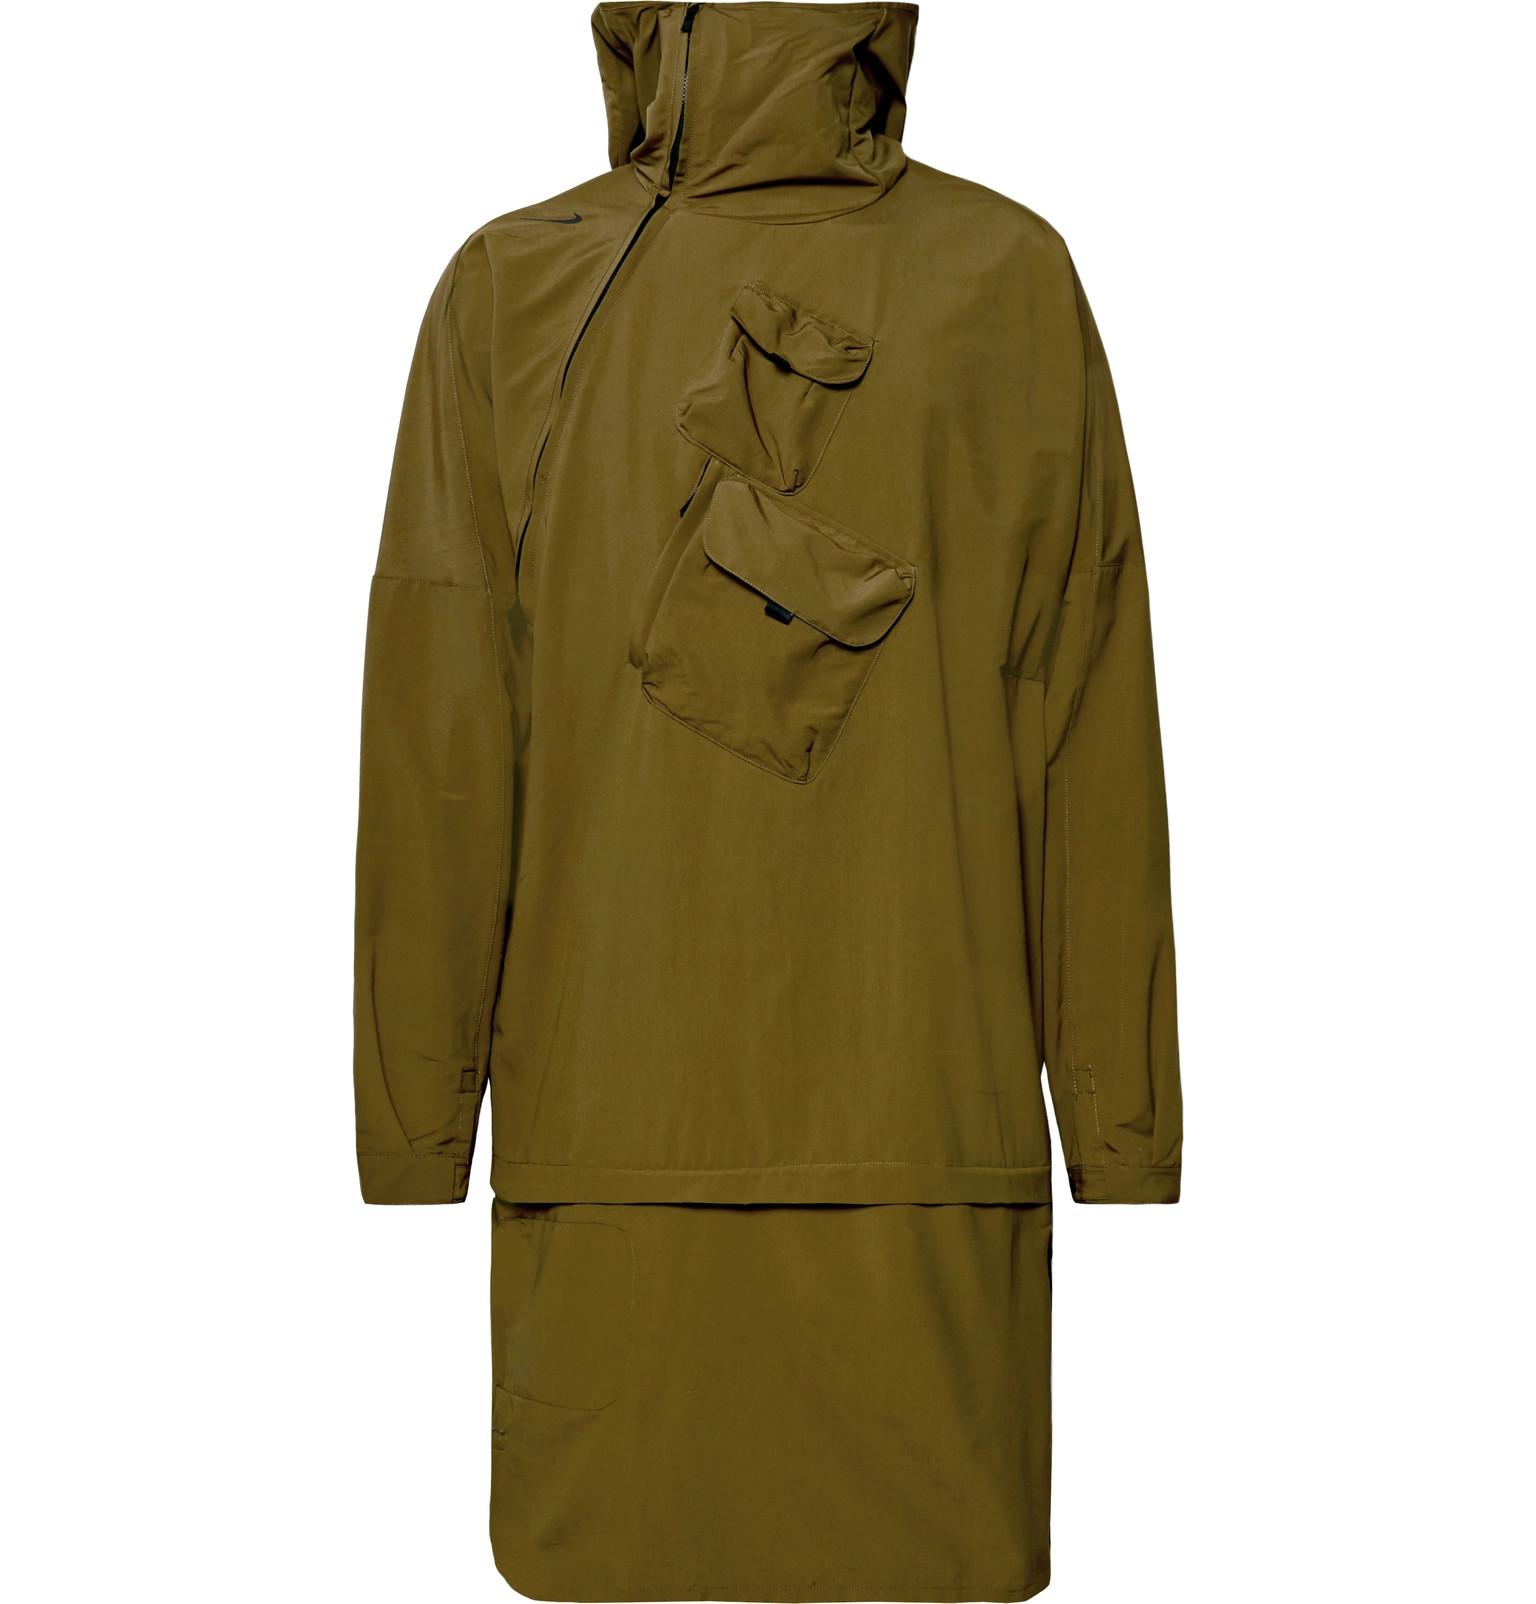 Nike. Menu0027s Green Lab Aae 2.0 Convertible Shell Hooded Jacket